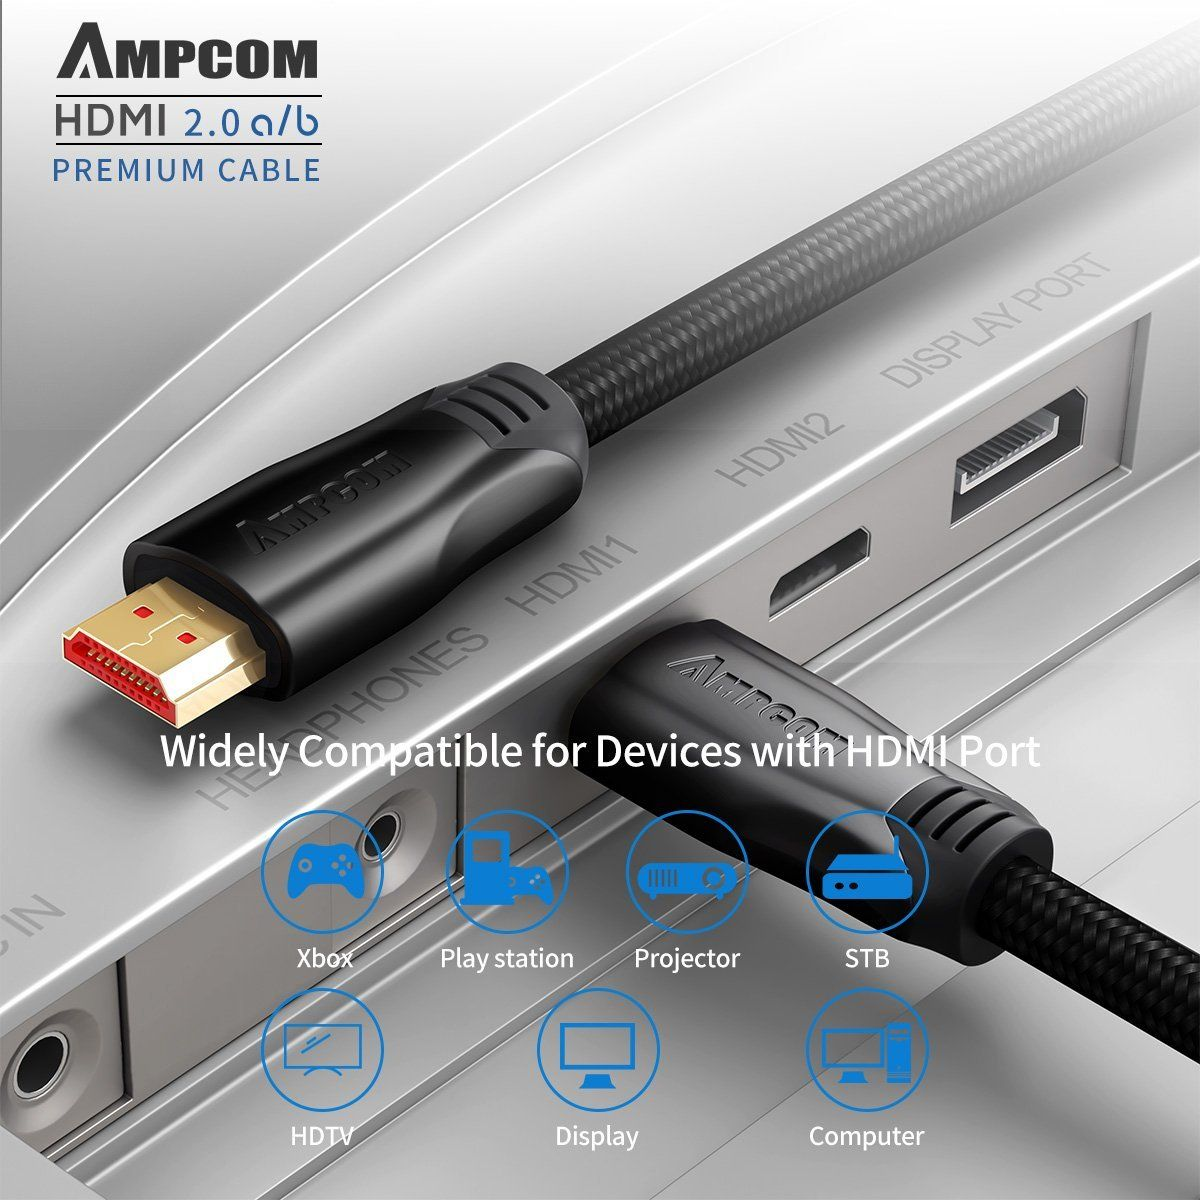 6ft Hdmi Cable Ampcom Zinc Alloy Shell Cotton Braided 24k Gold Plated Hdmi To Hdmi Cord Compatible With Hdmi 2 0a B 2 0 1 4a Ul Hdmi Hdmi Cables Hdmi Cord